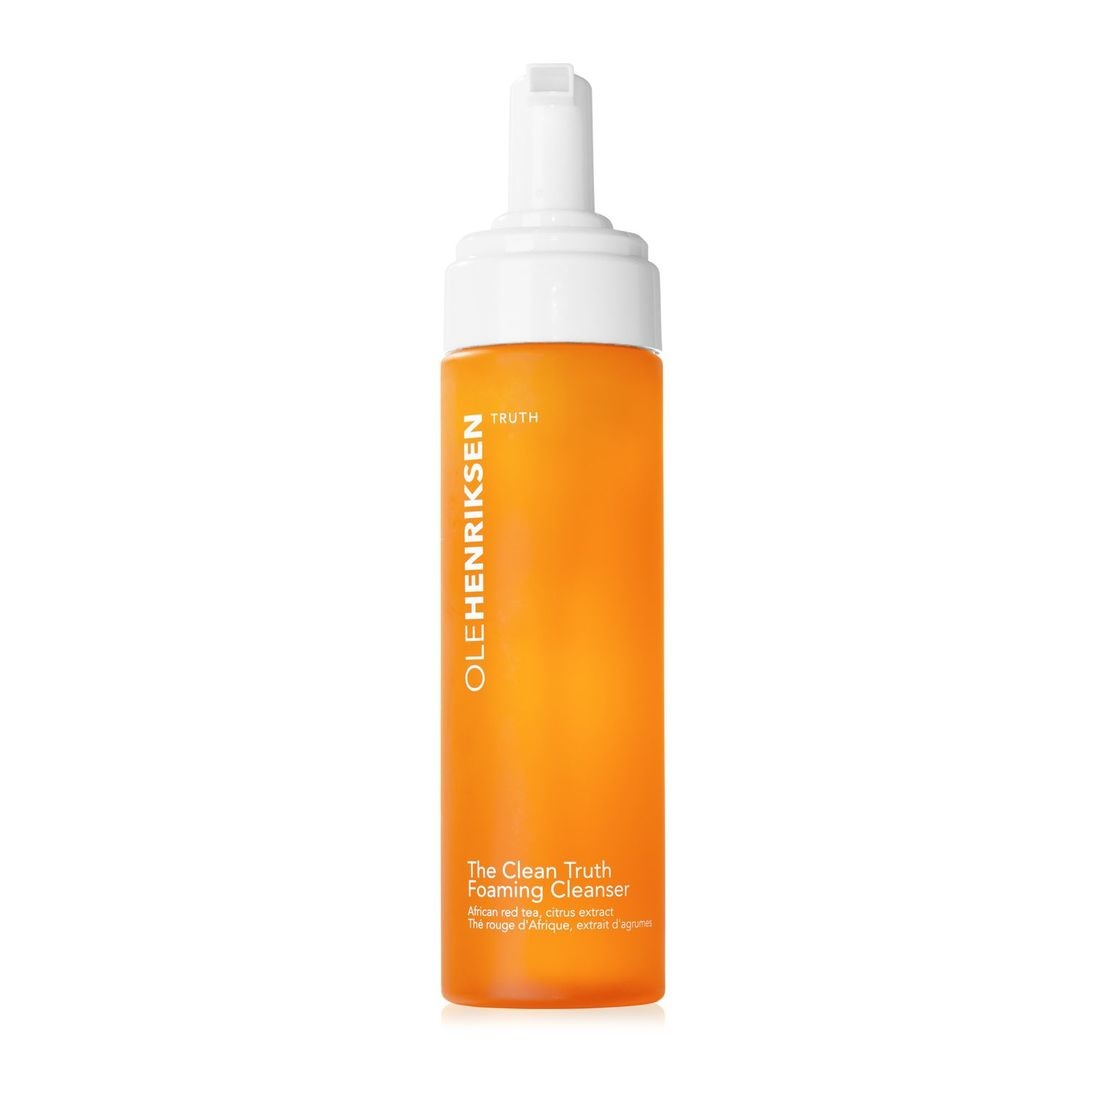 OLEHENRIKSEN The Clean Truth™ Foaming Cleanser